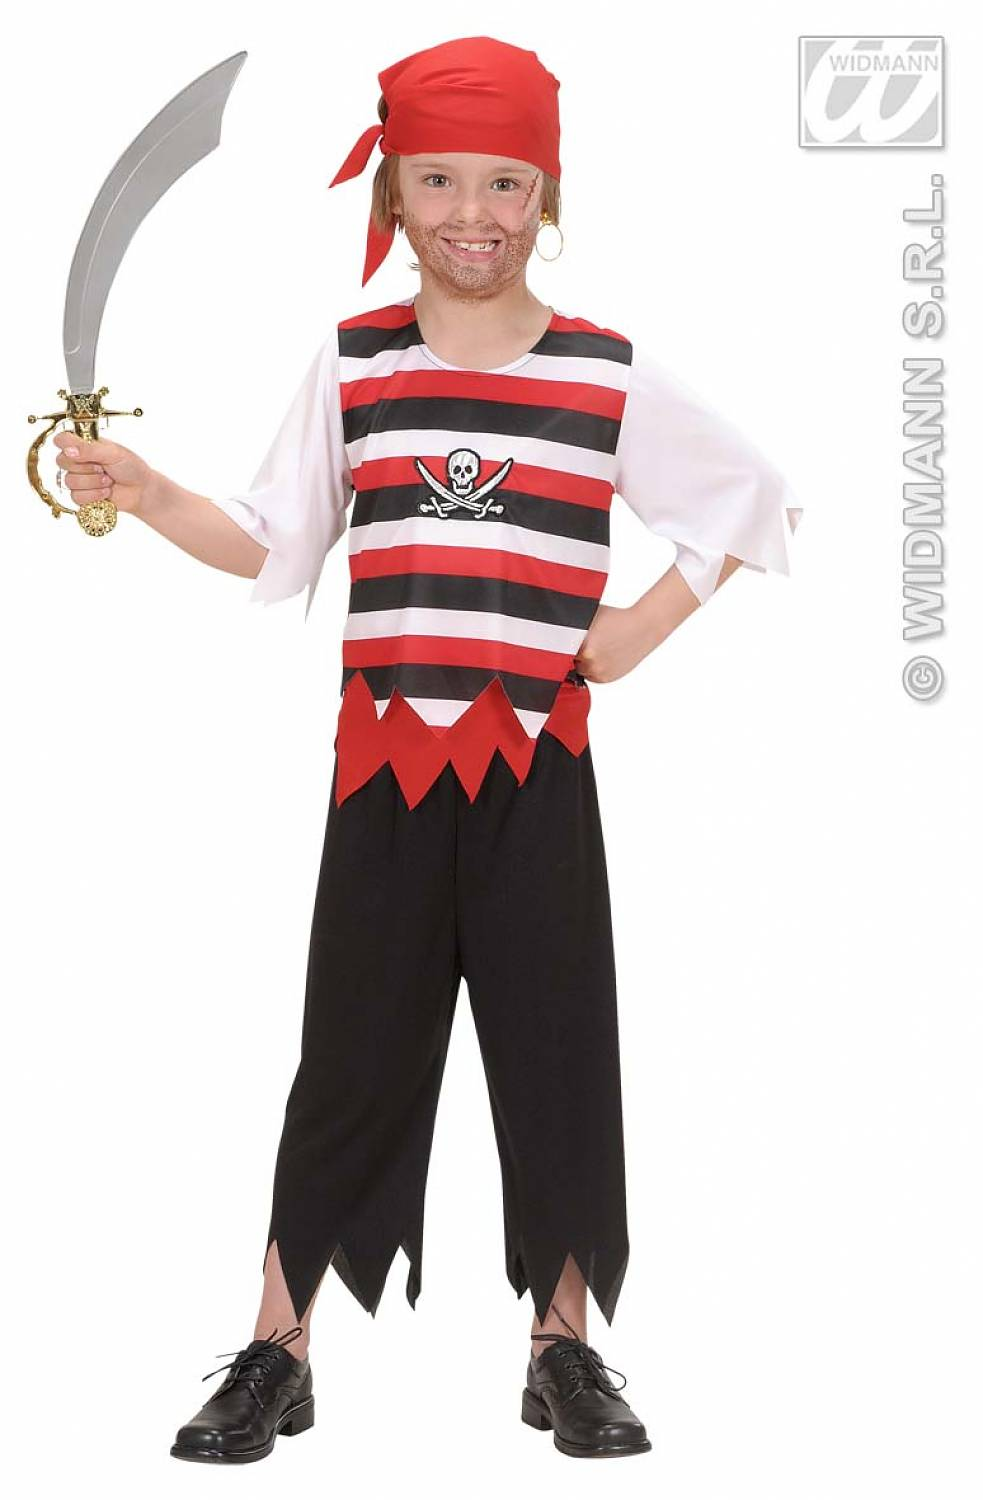 Carnival-costumes Children Pirate boy  sc 1 st  in the most foolish online fancy dress and accessory store & Carnival-costumes: Children: Pirate boy - Fancy dress